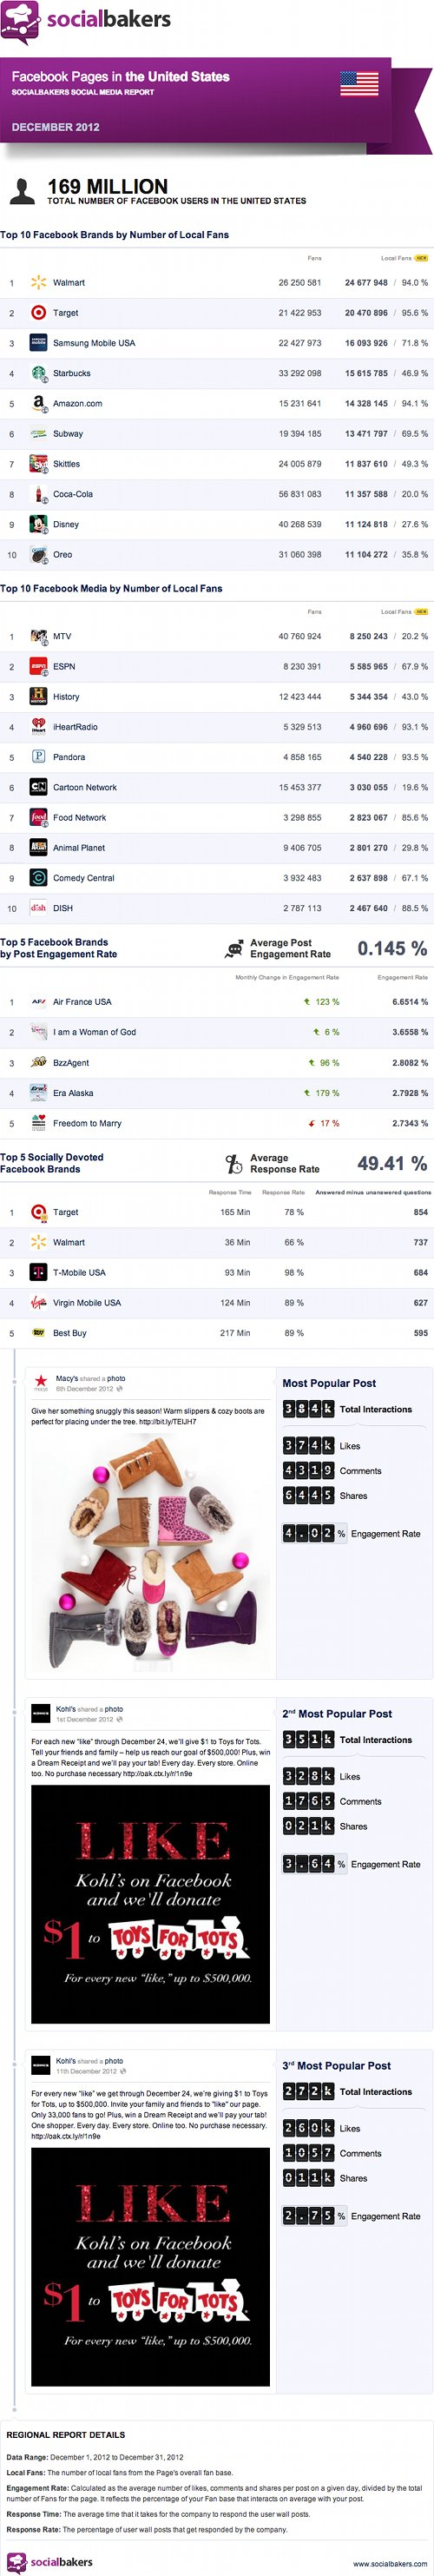 Top Facebook Pages in the US, Dec '12